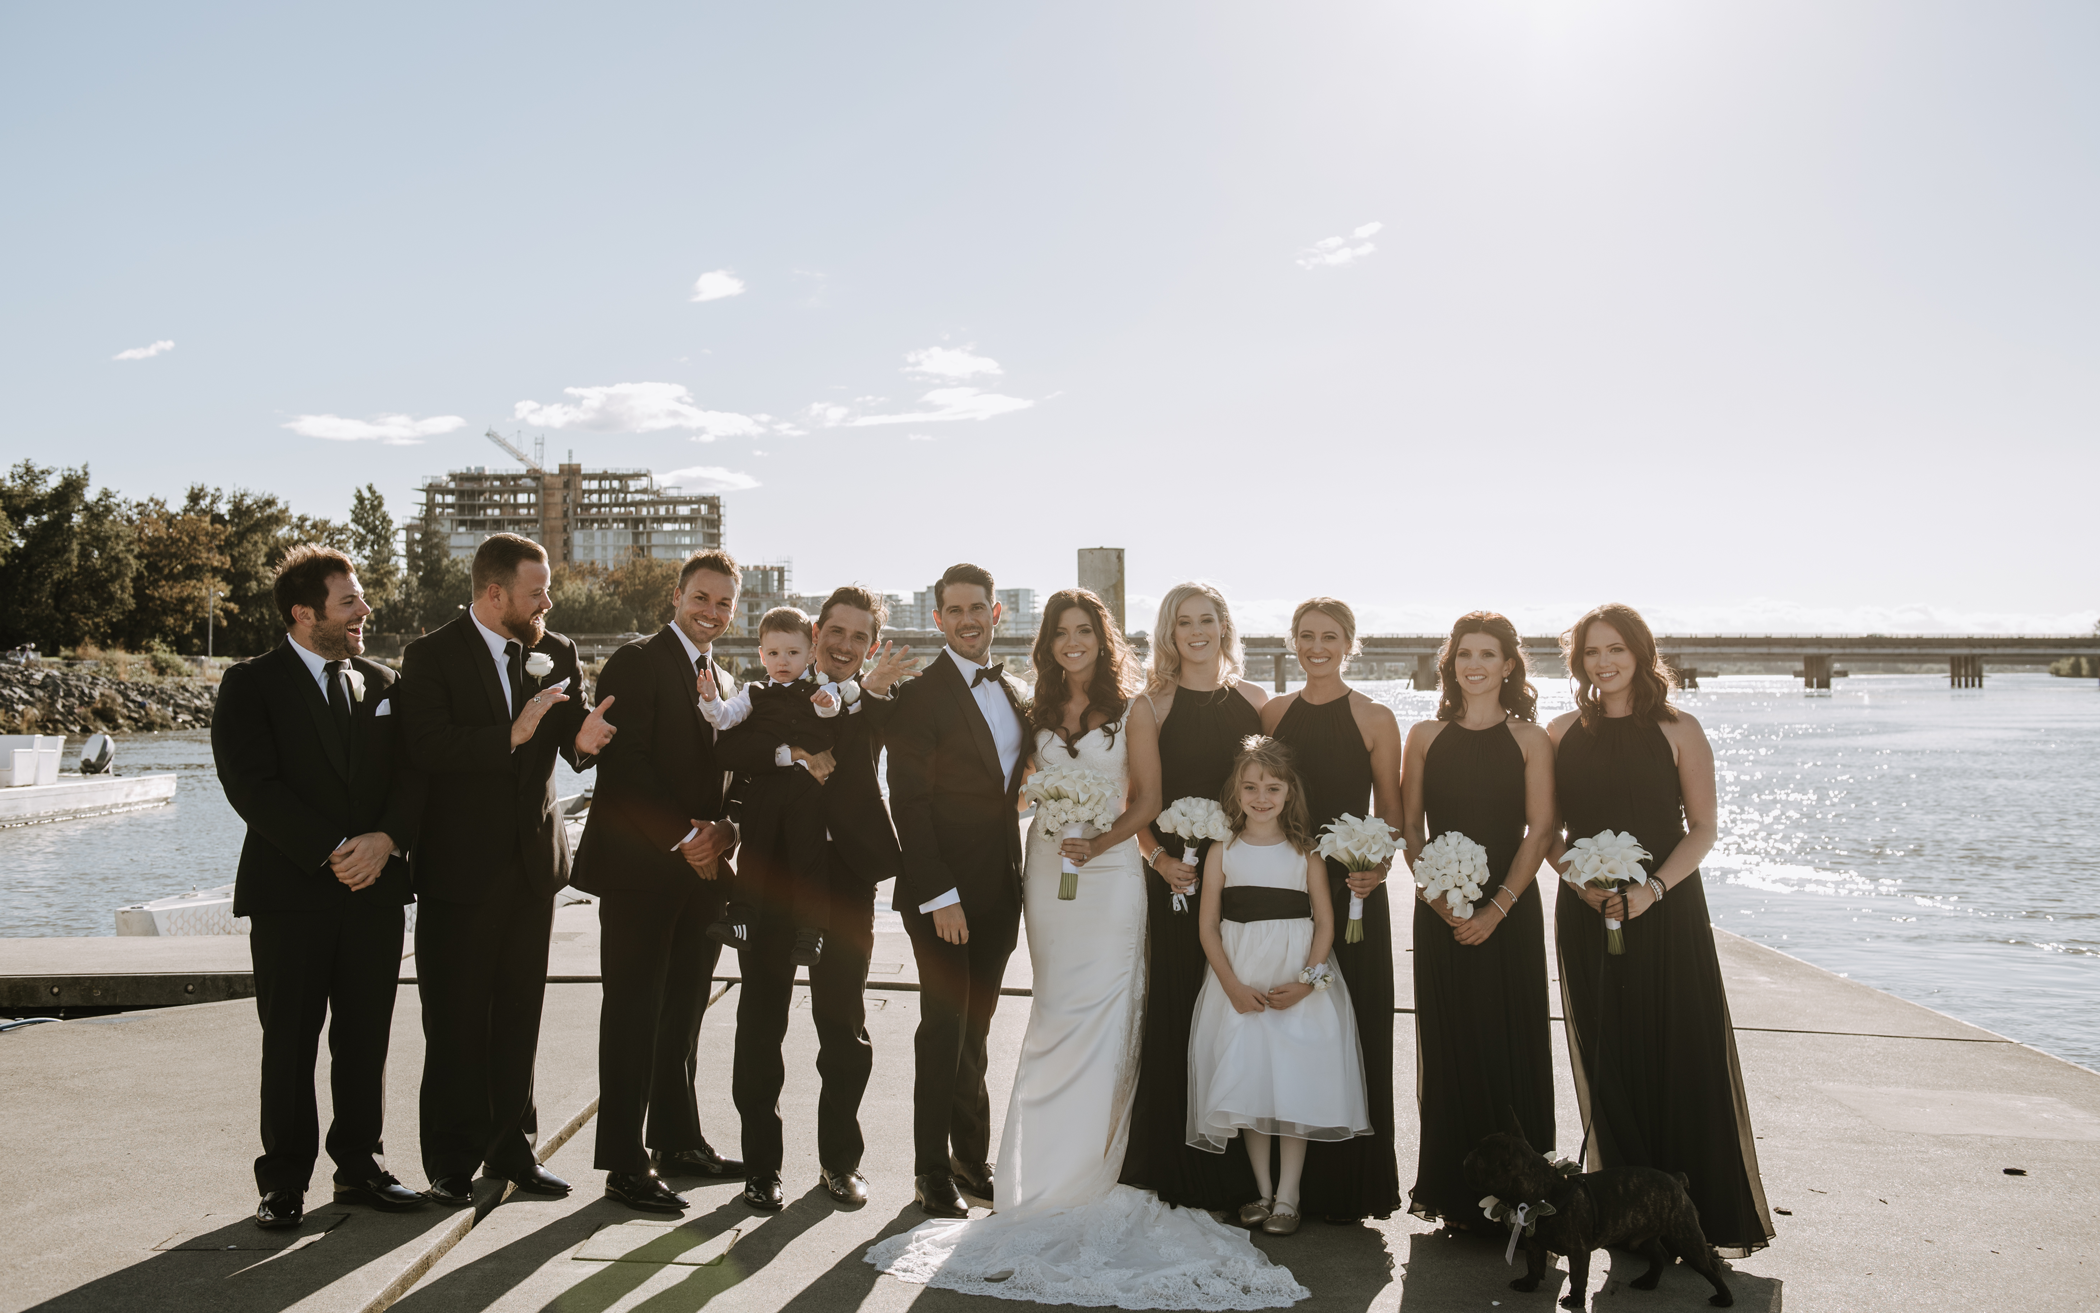 040-kaoverii-silva-la-wedding-vancouver-photography.png